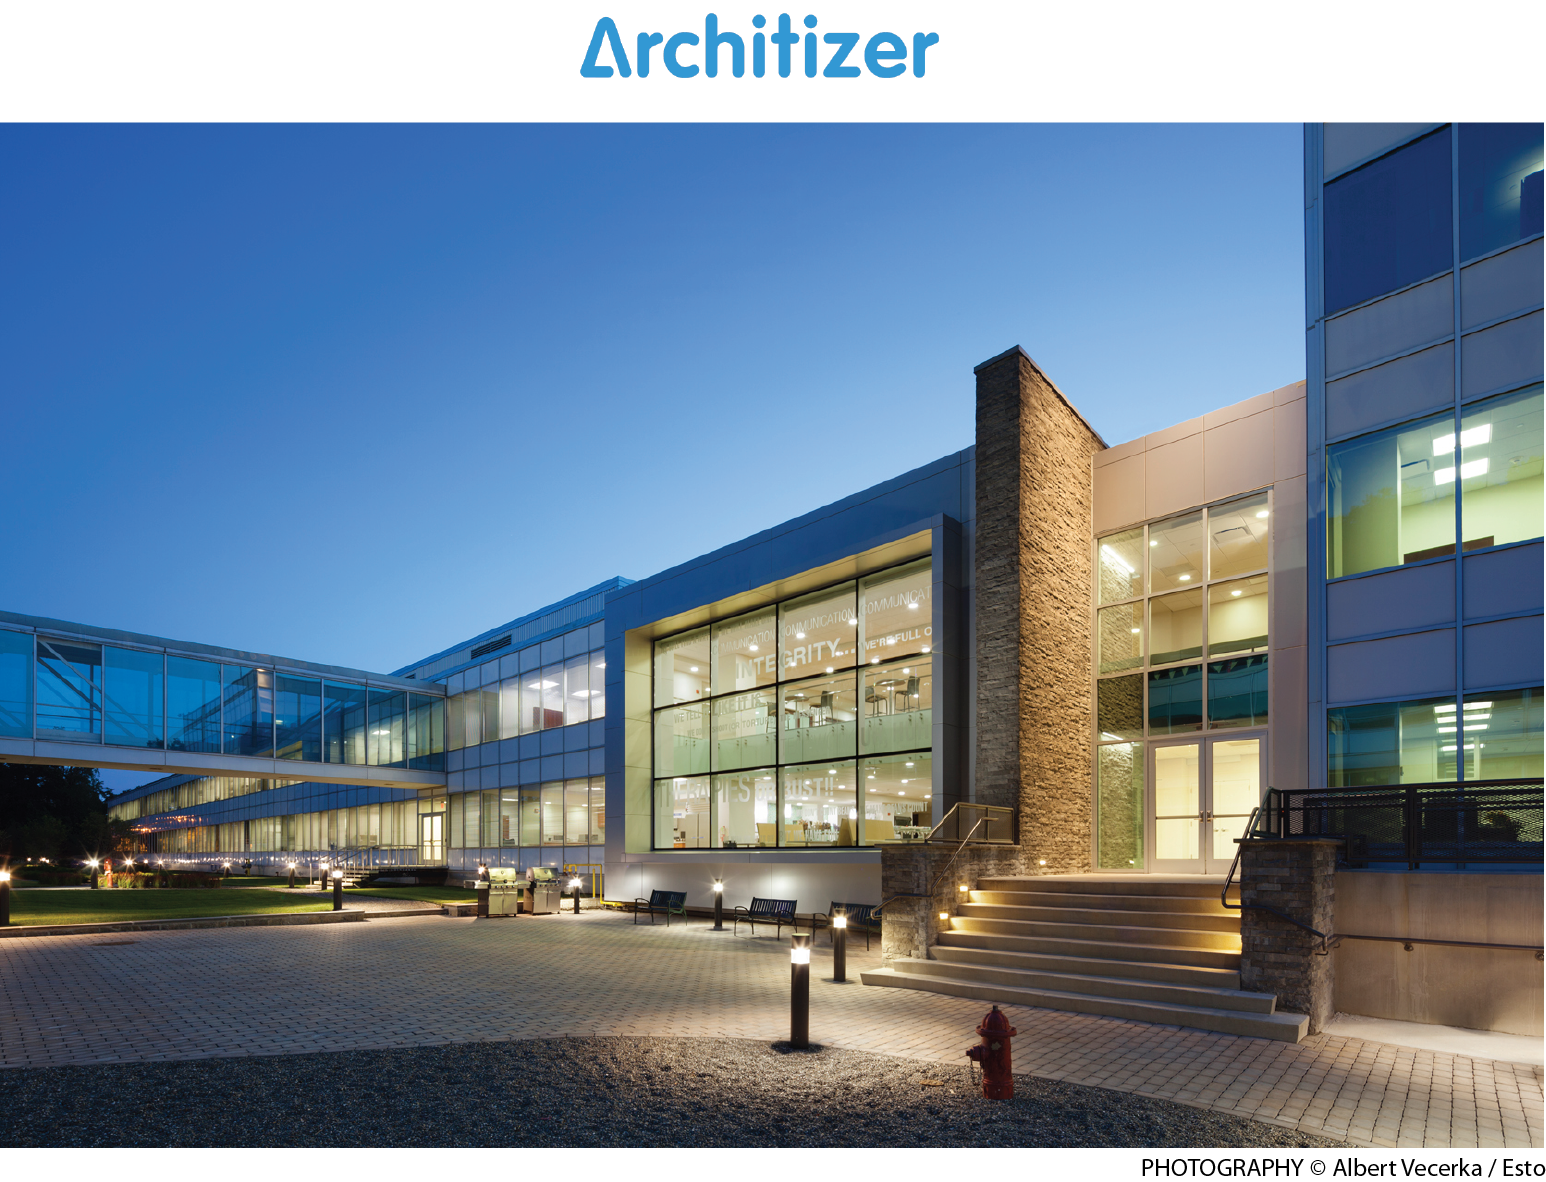 Acorda - Architizer - Winter 2012